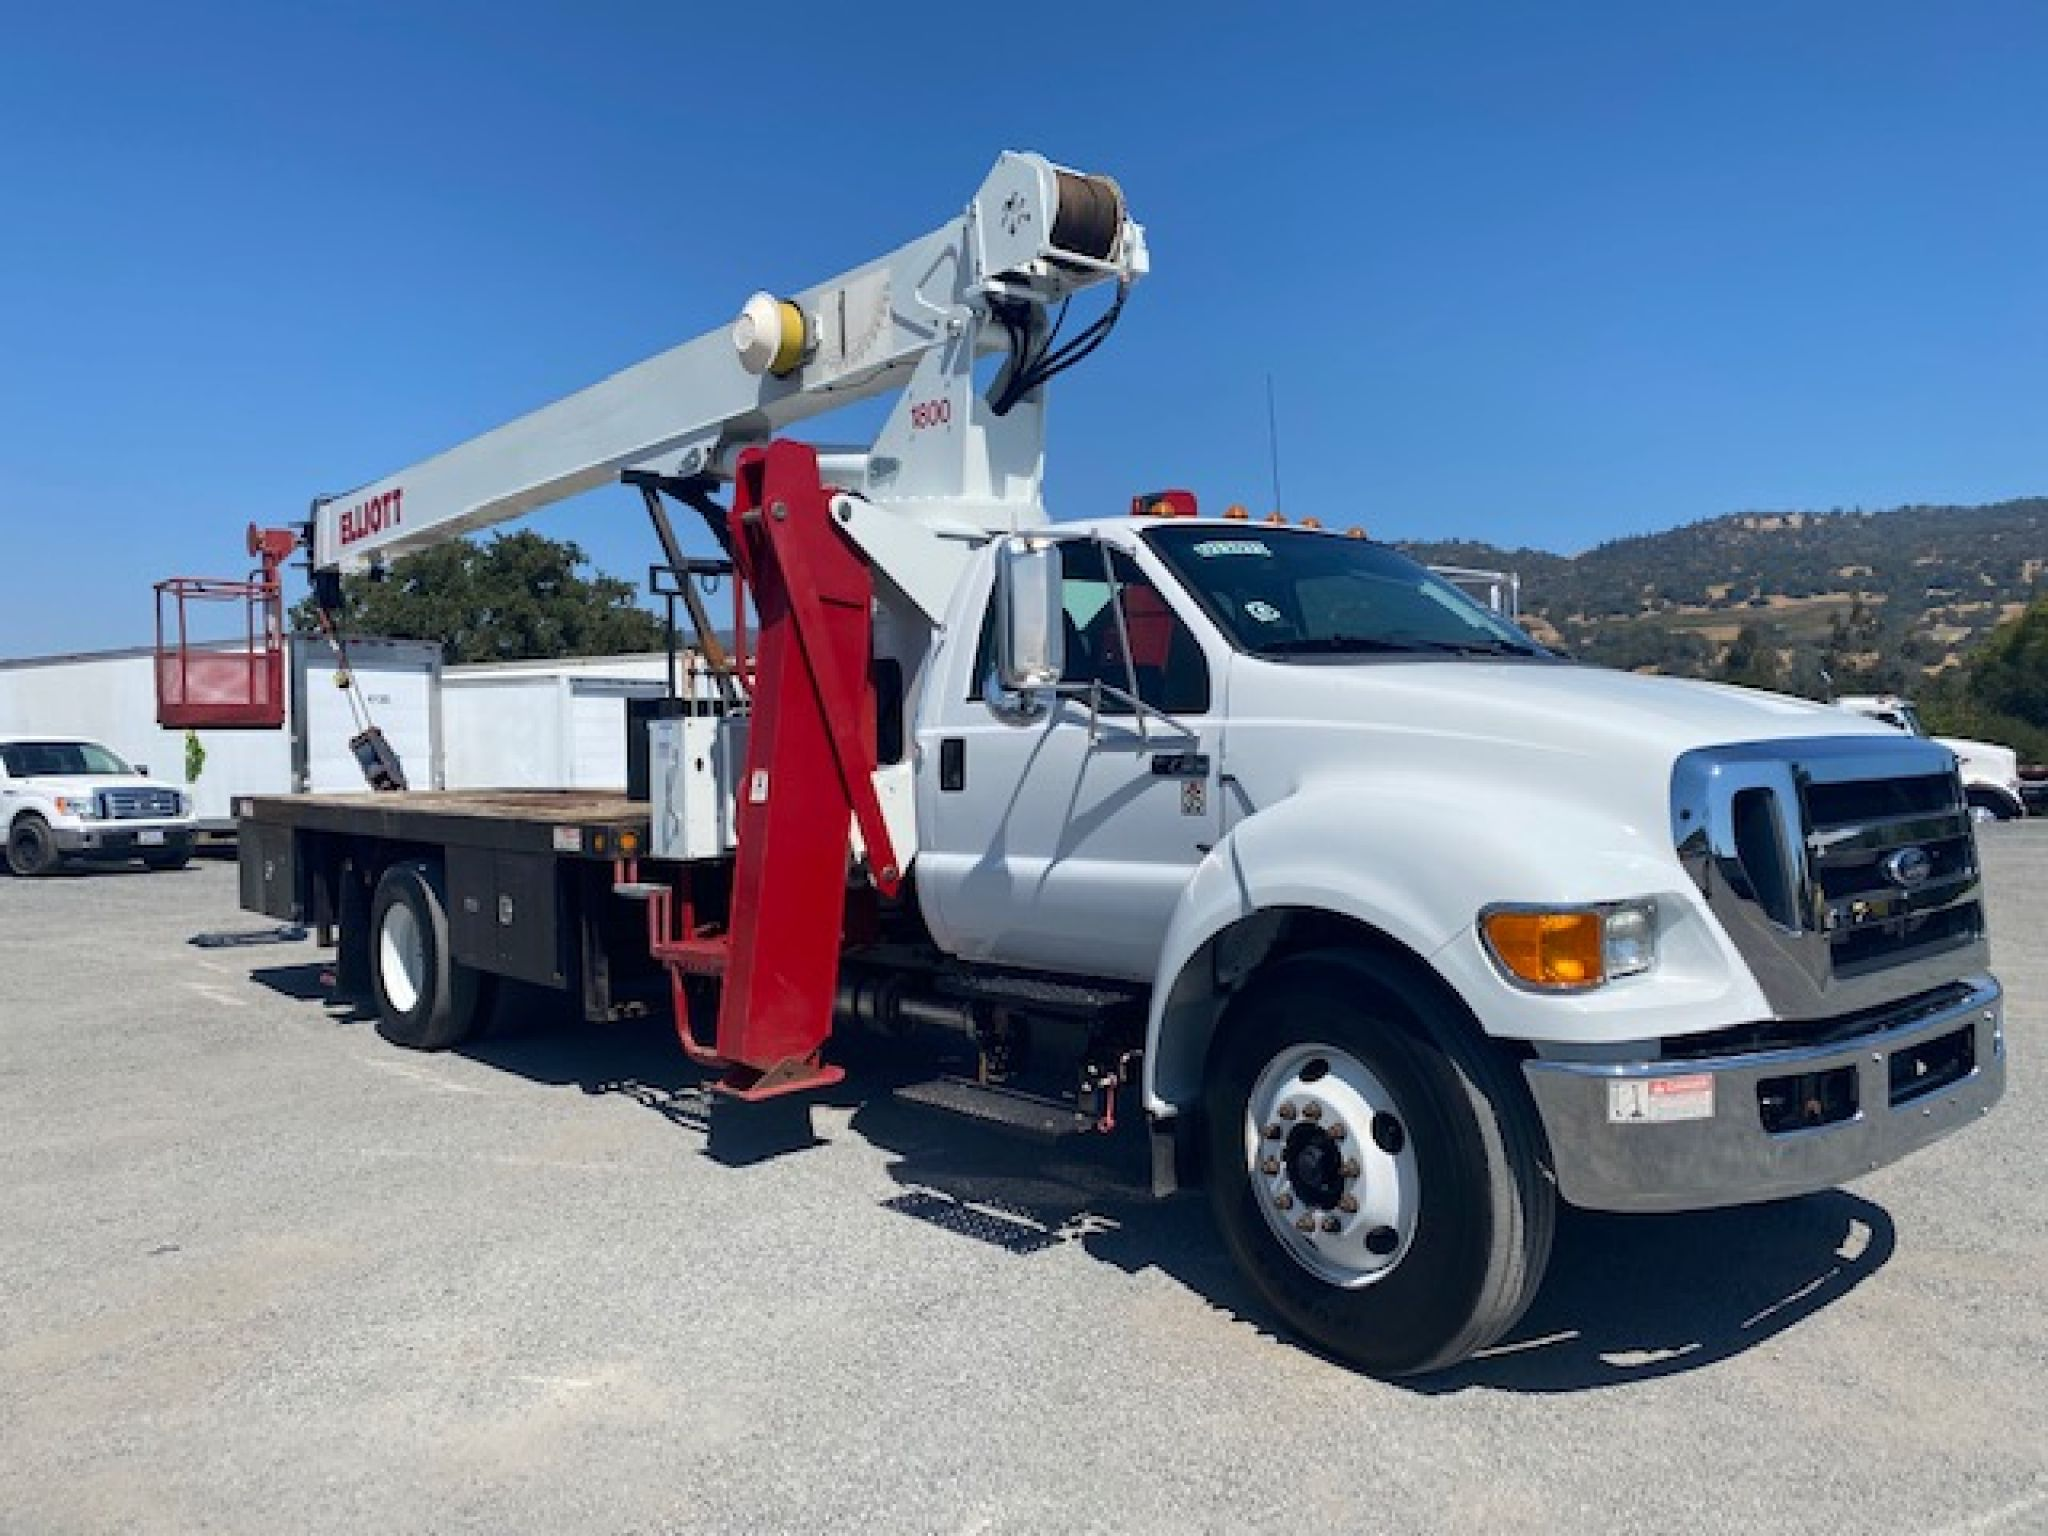 2012 Ford F750 XL Crane Truck For Sale With An 18-Ton Elliot Crane